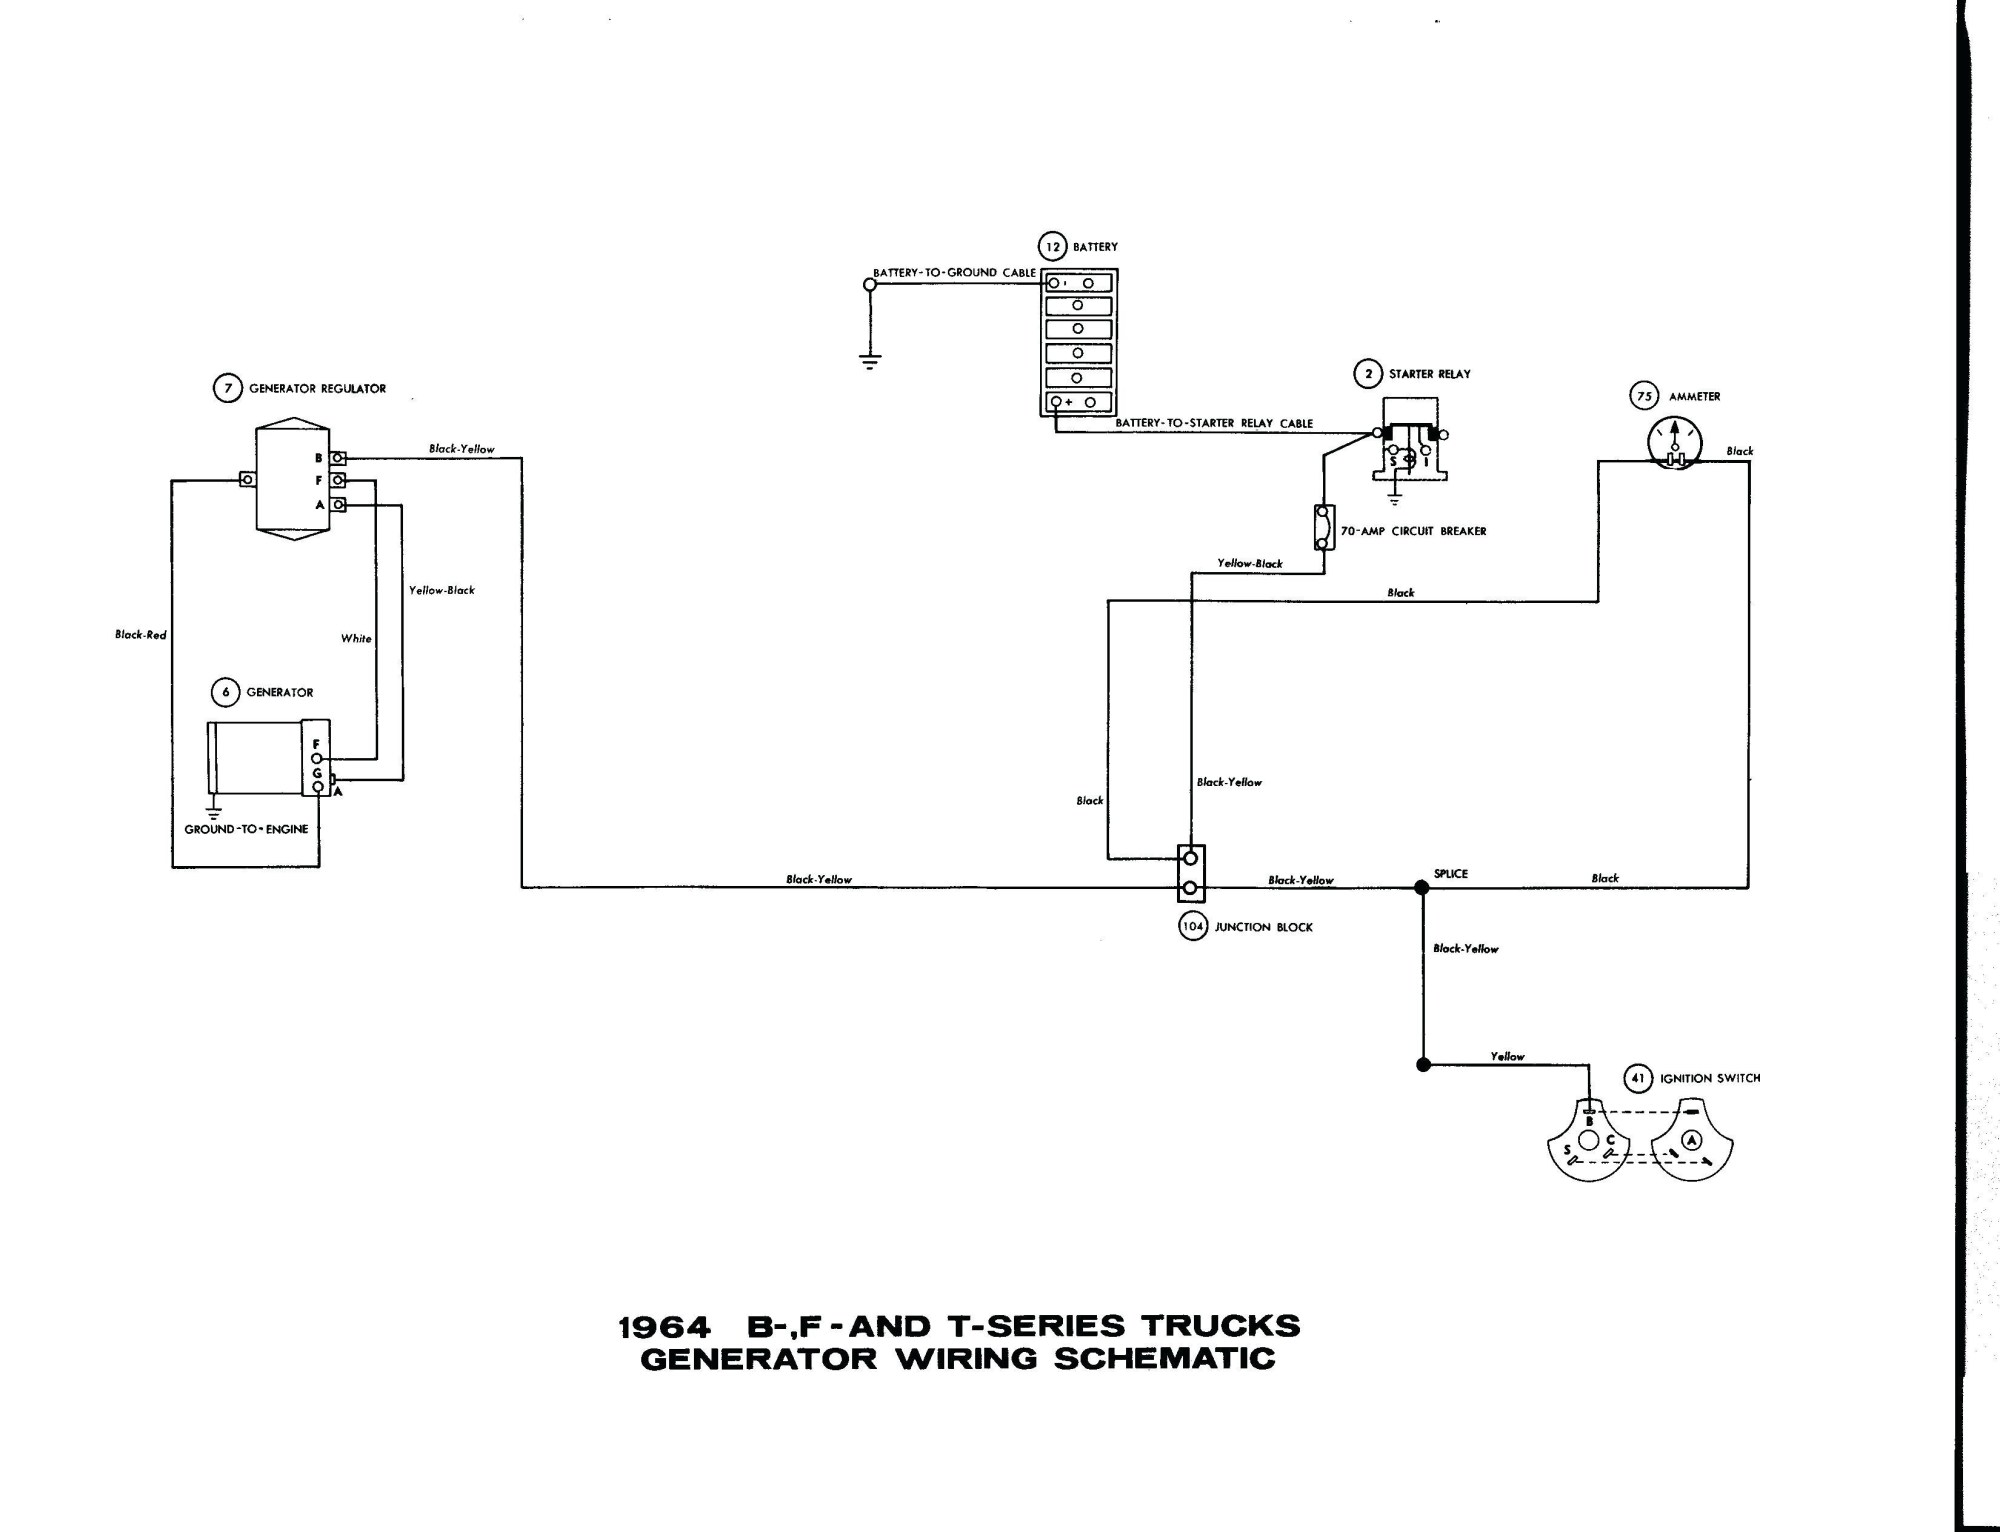 hight resolution of diagram arco wiring gua090a016 in wiring diagramsdiagram arco wiring gua090a016 in wiring diagram load 3700 arco